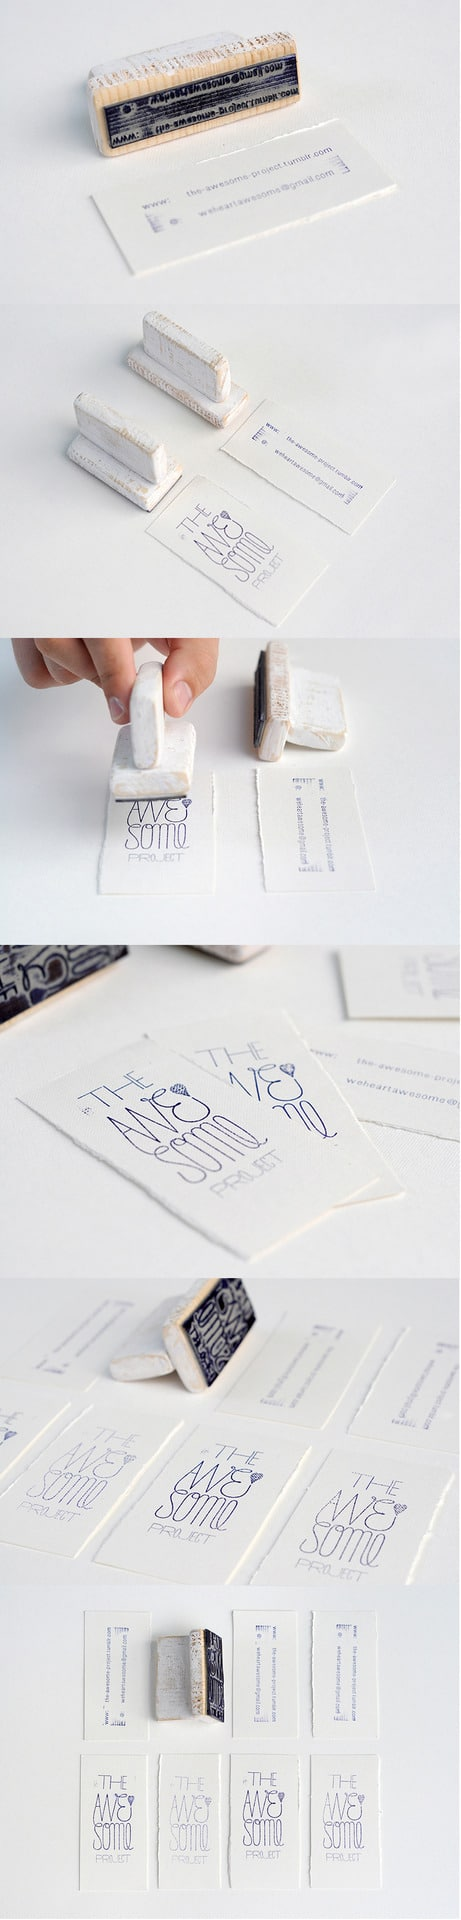 23Handmade Minimalist card-Thirty Smart and Innovative Business Cards Ideas